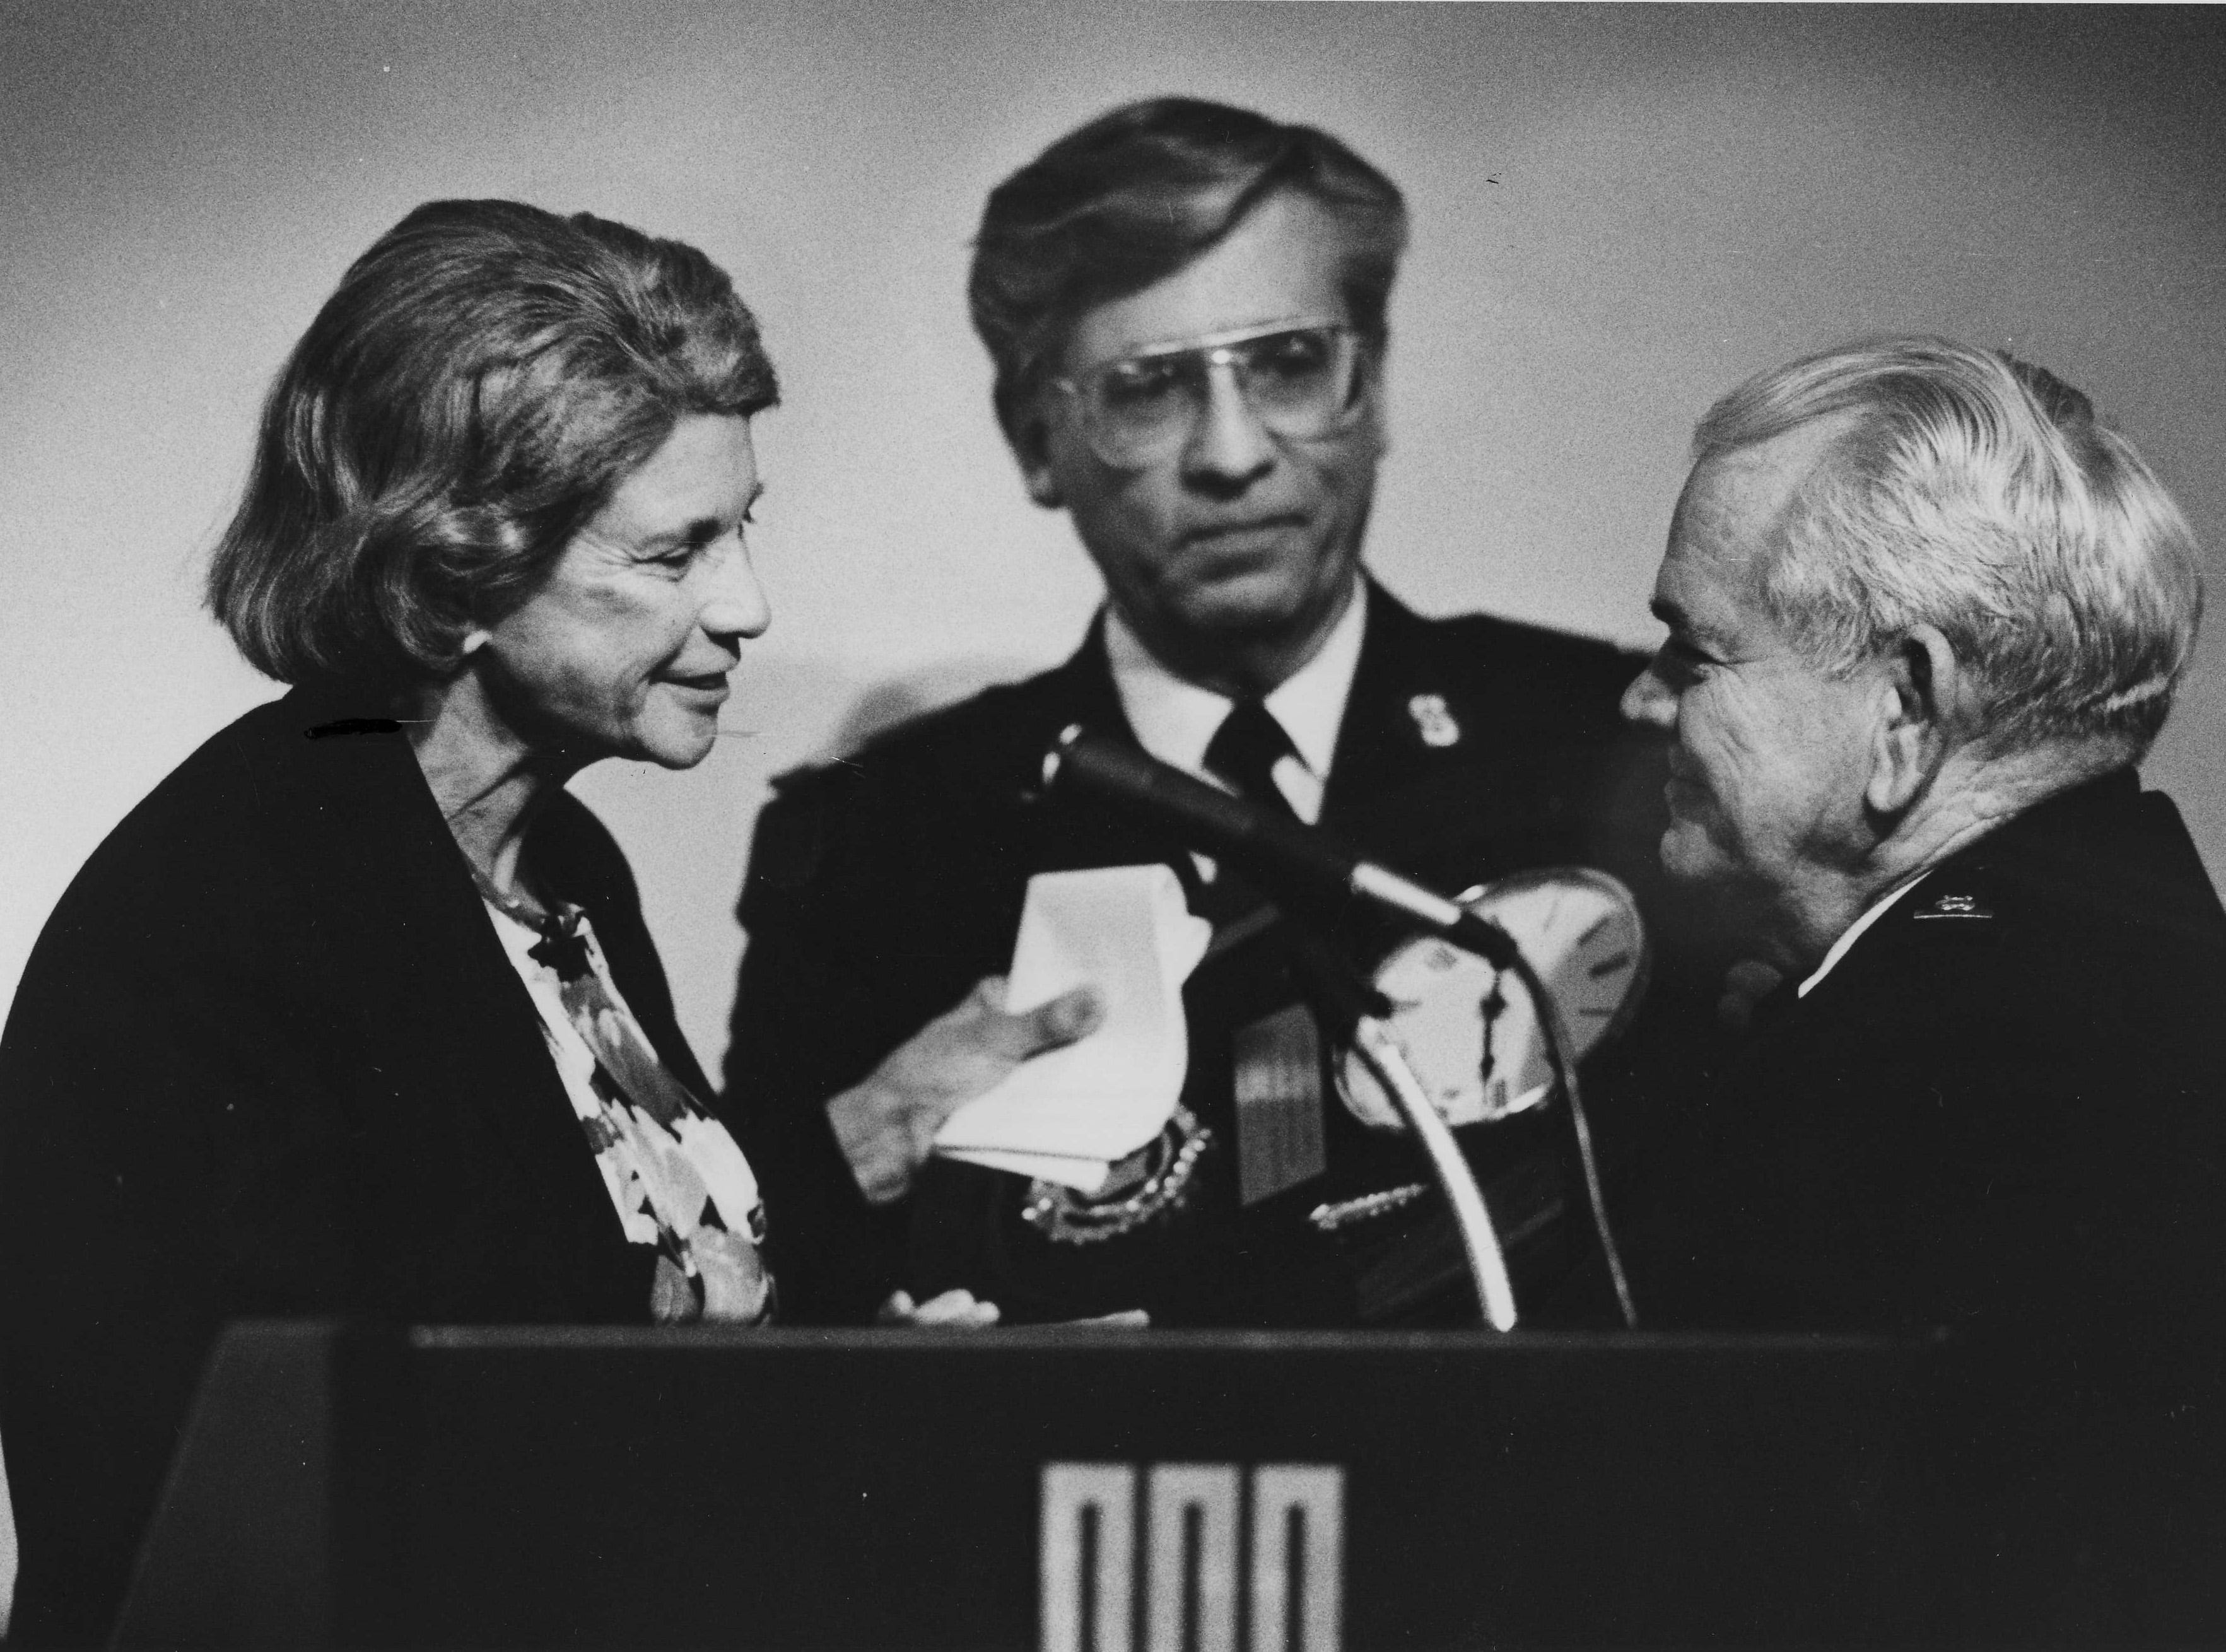 United States Supreme Court Justice Sandra Day O'Connor presented an award to Chuck Lakin at the Salvation Army awards dinner on May 15, 1989.